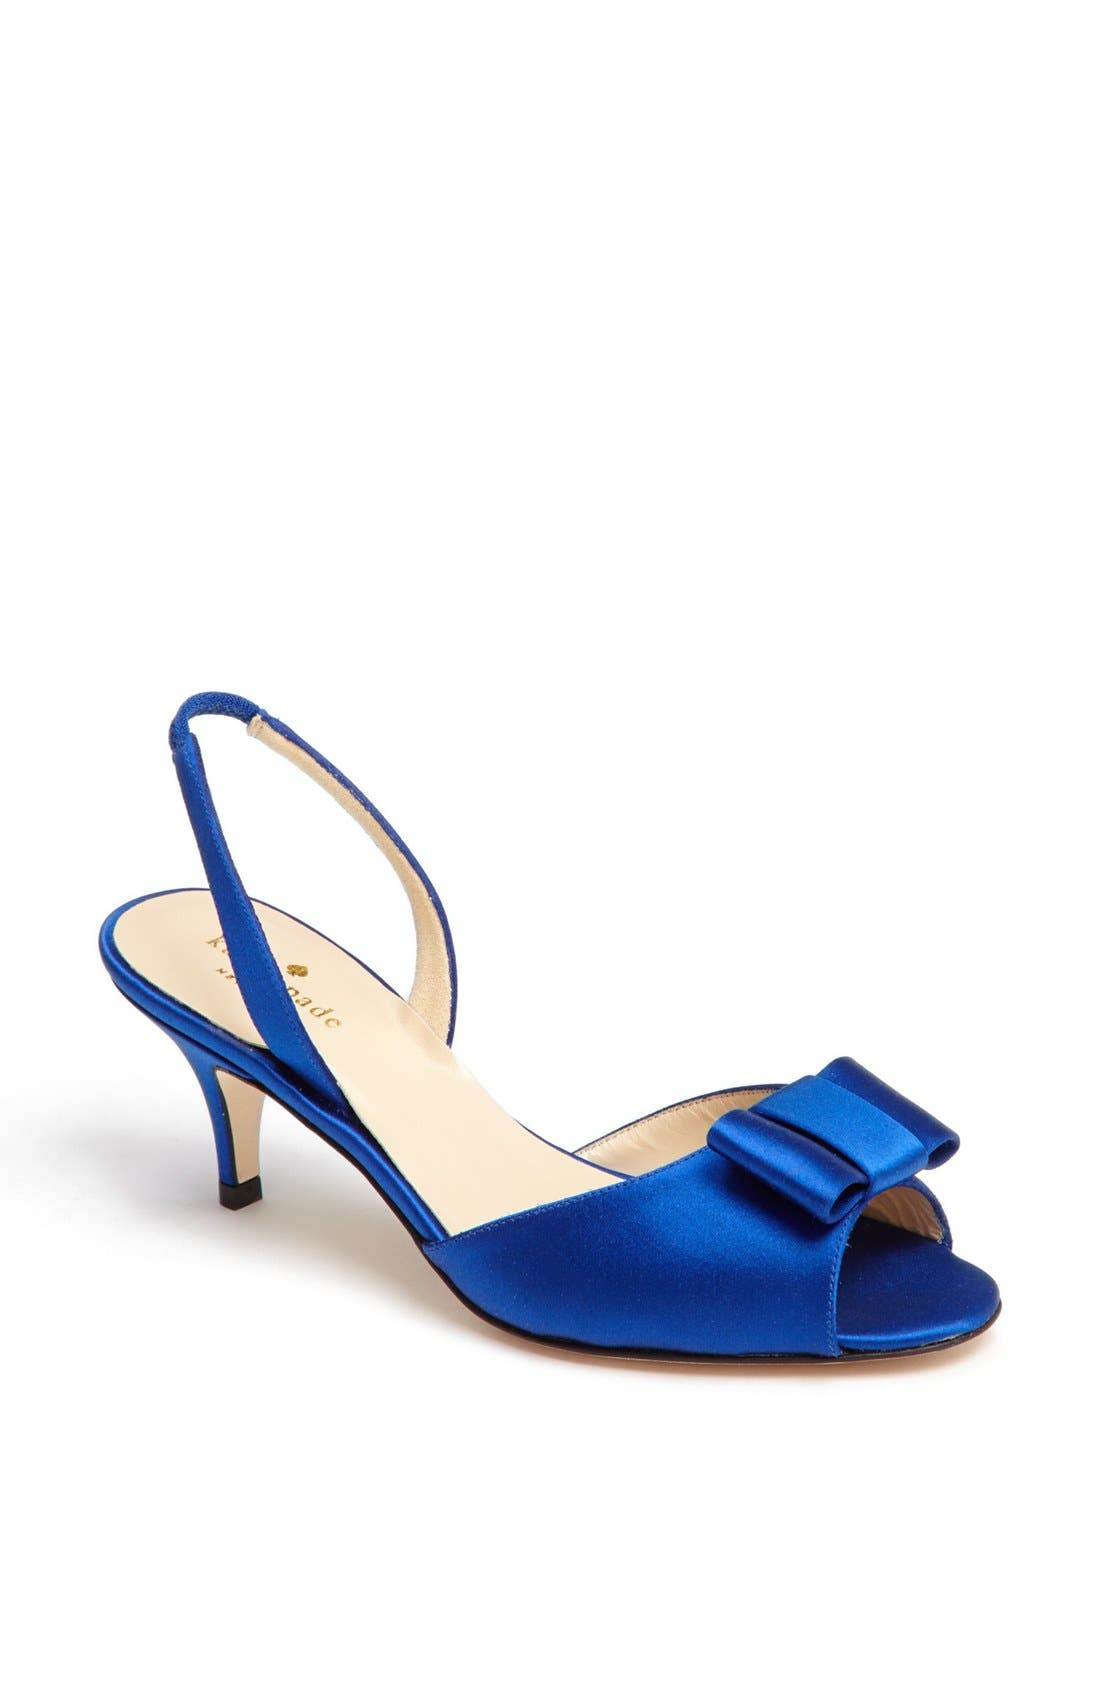 Main Image - kate spade new york 'emelia' sandal (Women)